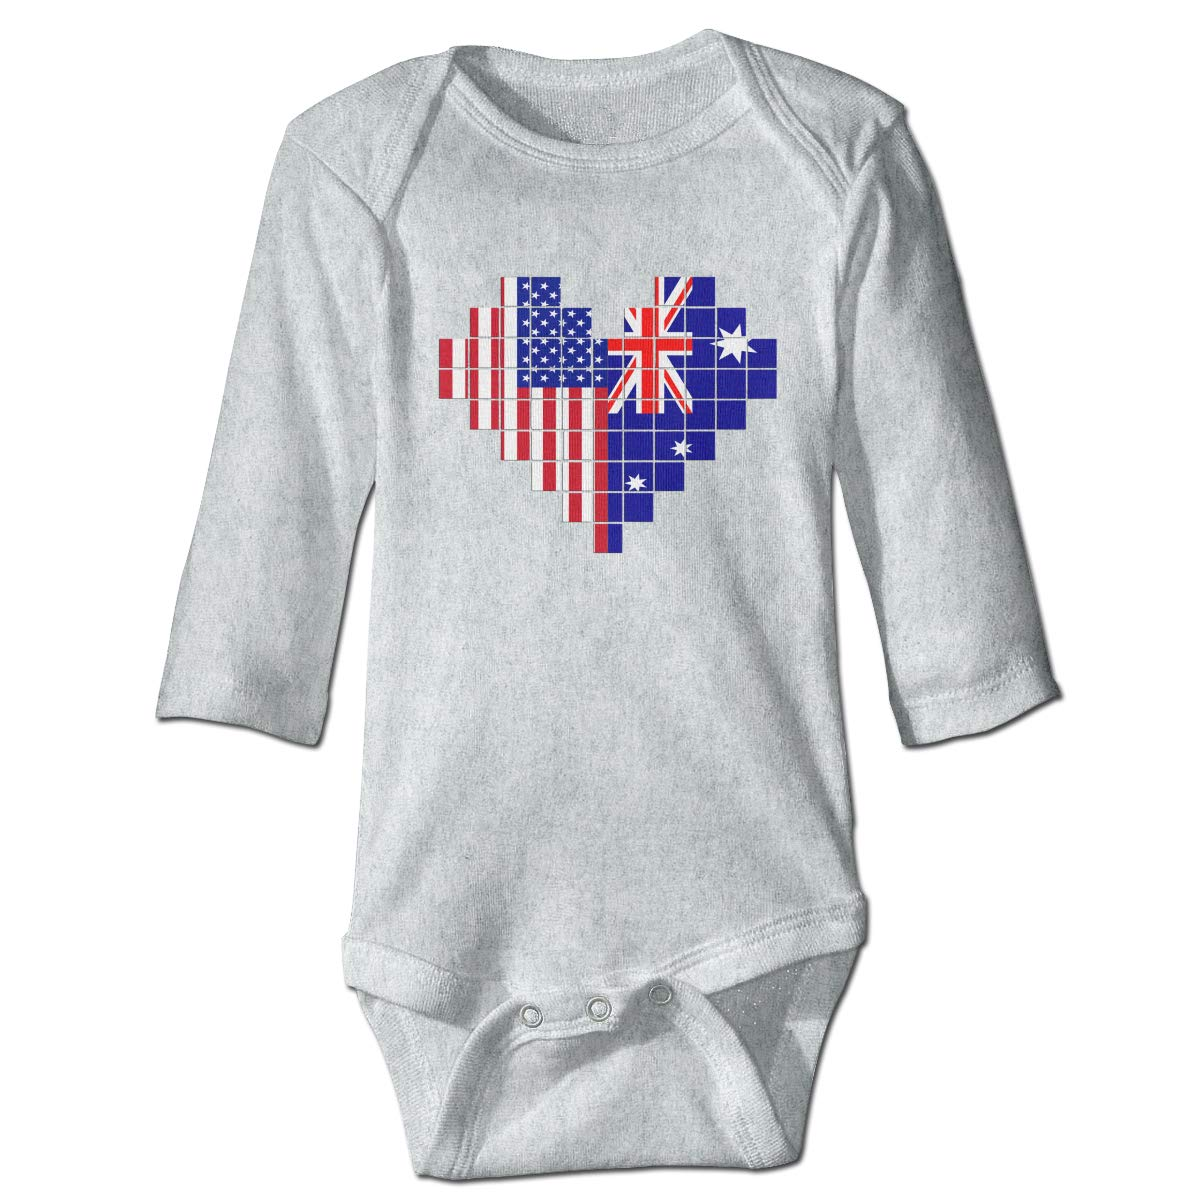 A14UBP Baby Infant Toddler Long Sleeve Jumpsuit Romper American Flag Australian Flag Puzzle Heart Playsuit Outfit Clothes